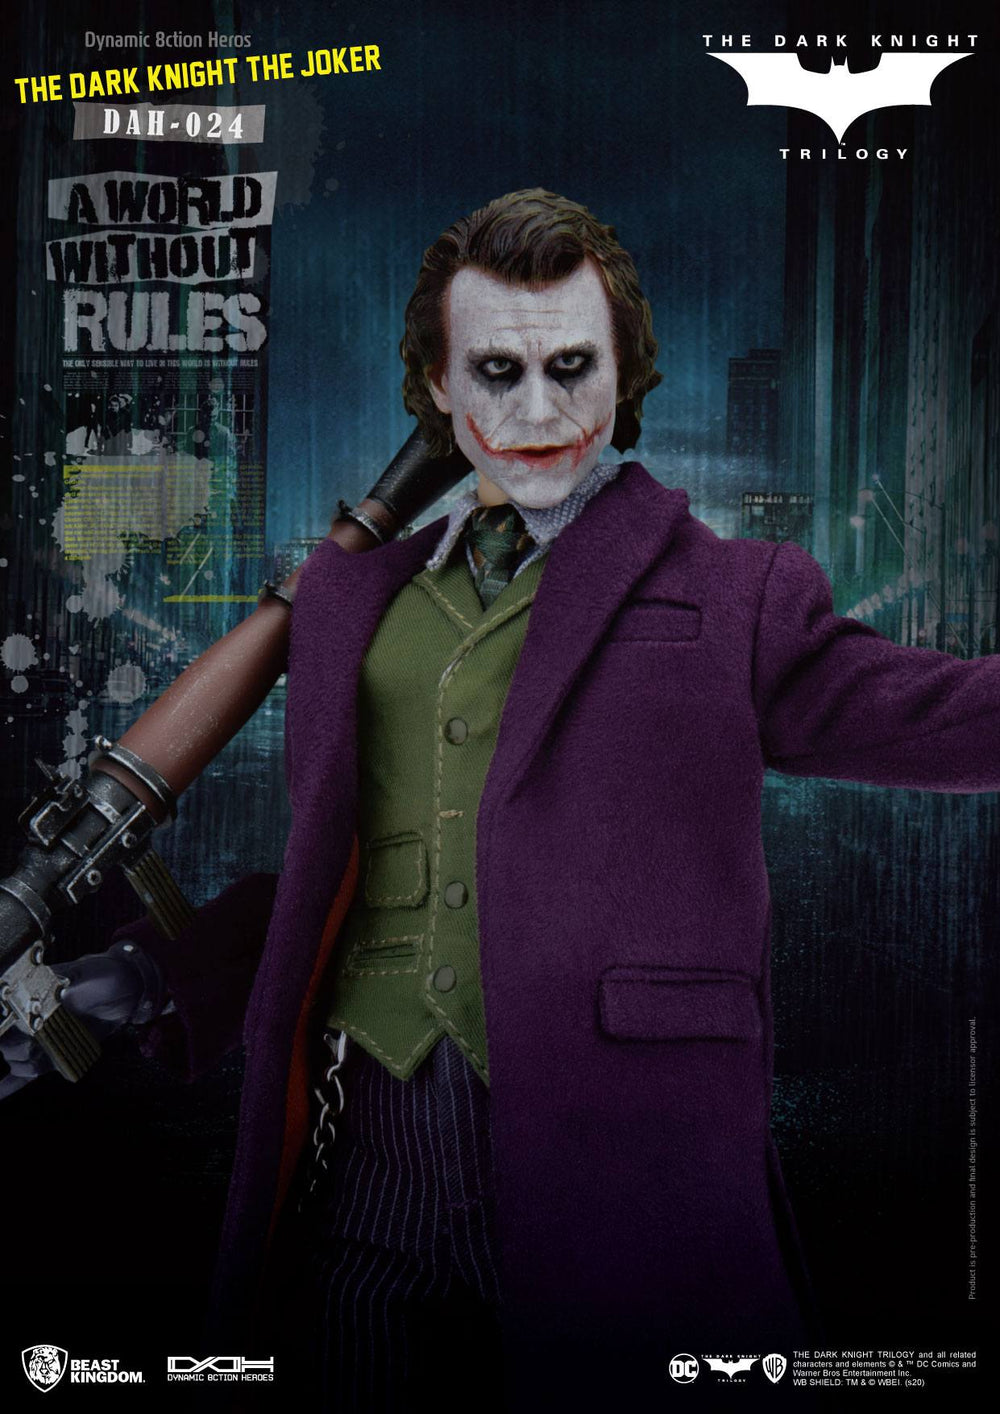 Beast Kingdom Batman The Dark Knight The Joker Dynamic 8ction Heroes 1/9 Action Figure